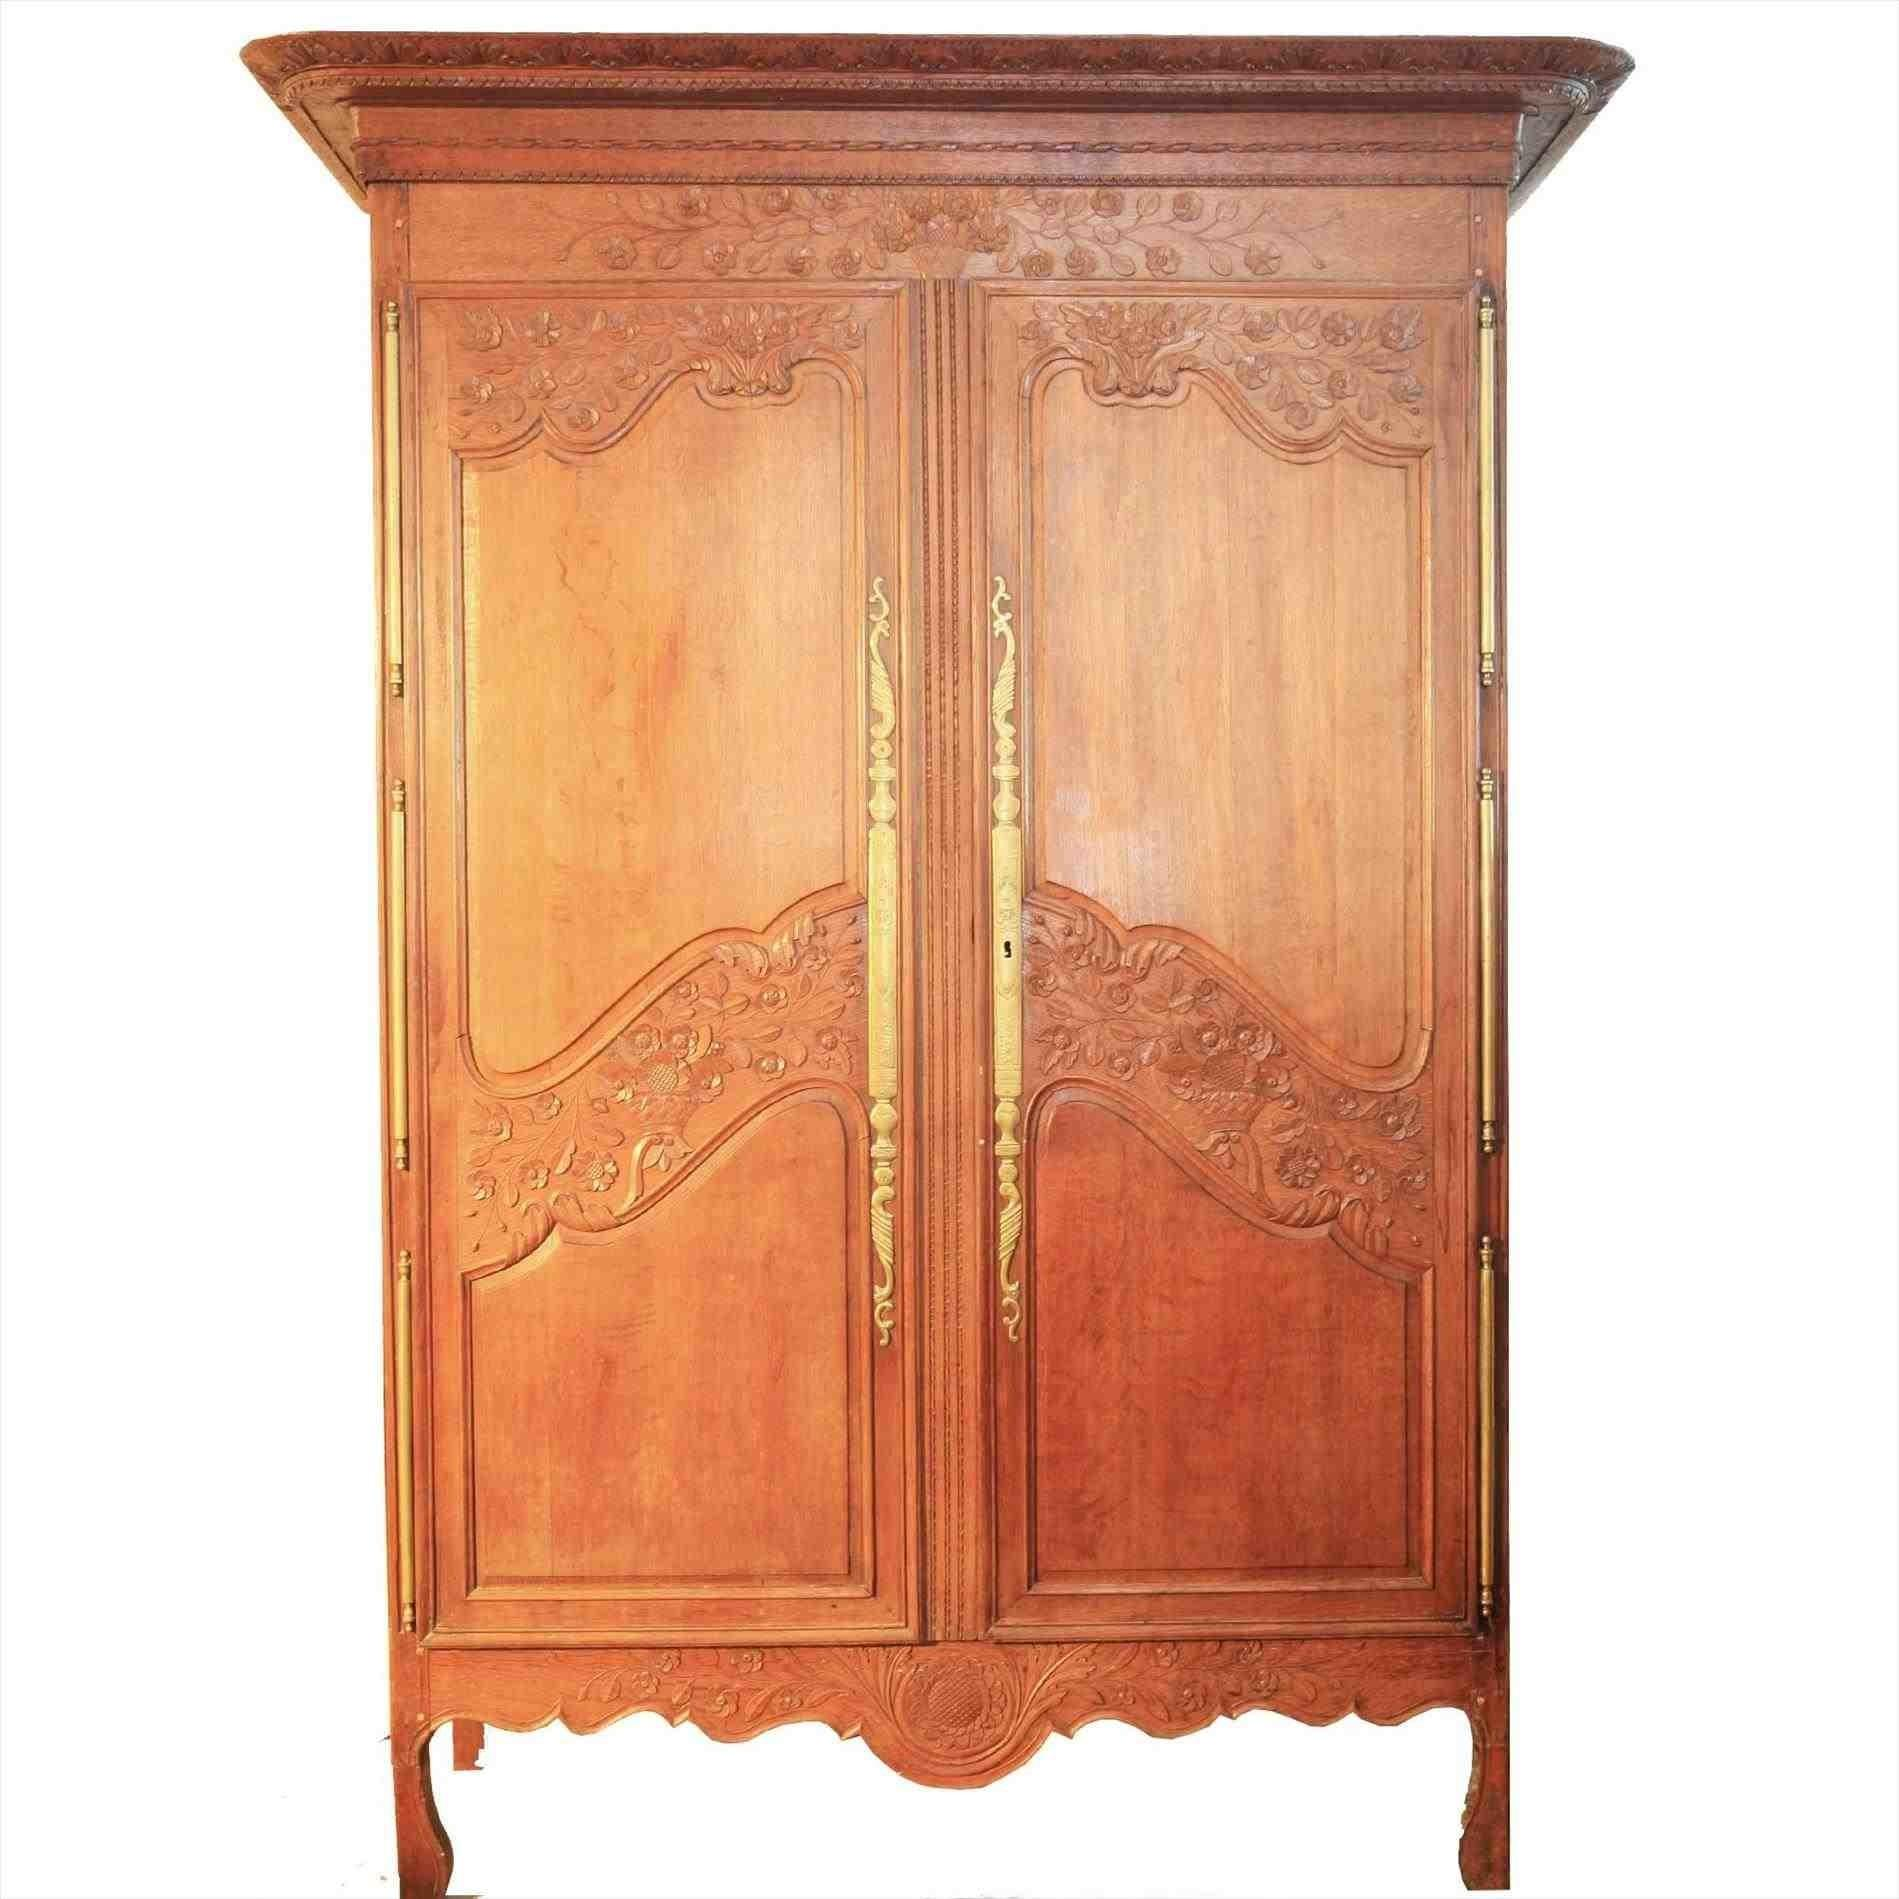 Antique Wardrobe Designs Temasistemi